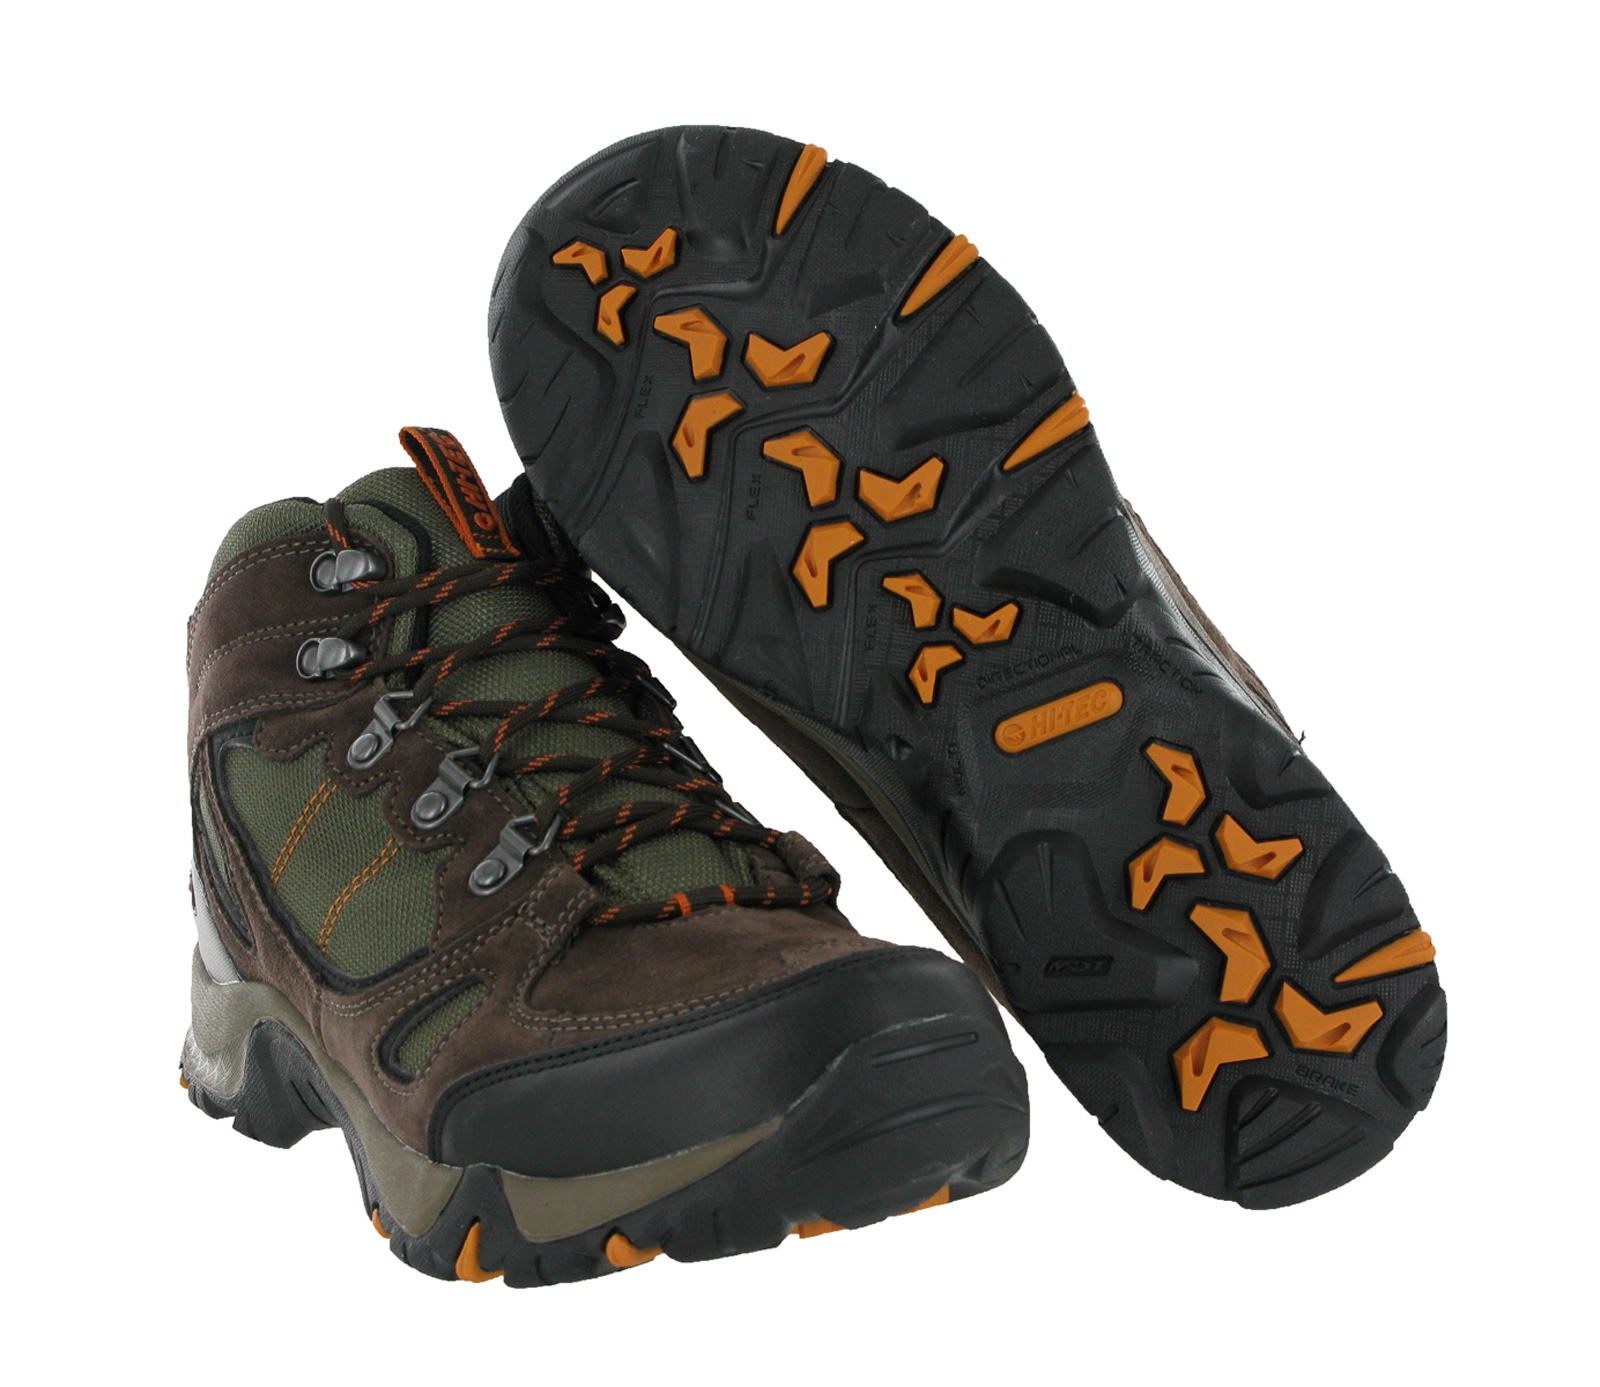 Mens Hi-tec Falcon Brown Leather Waterproof Walking Hiking Boots ...